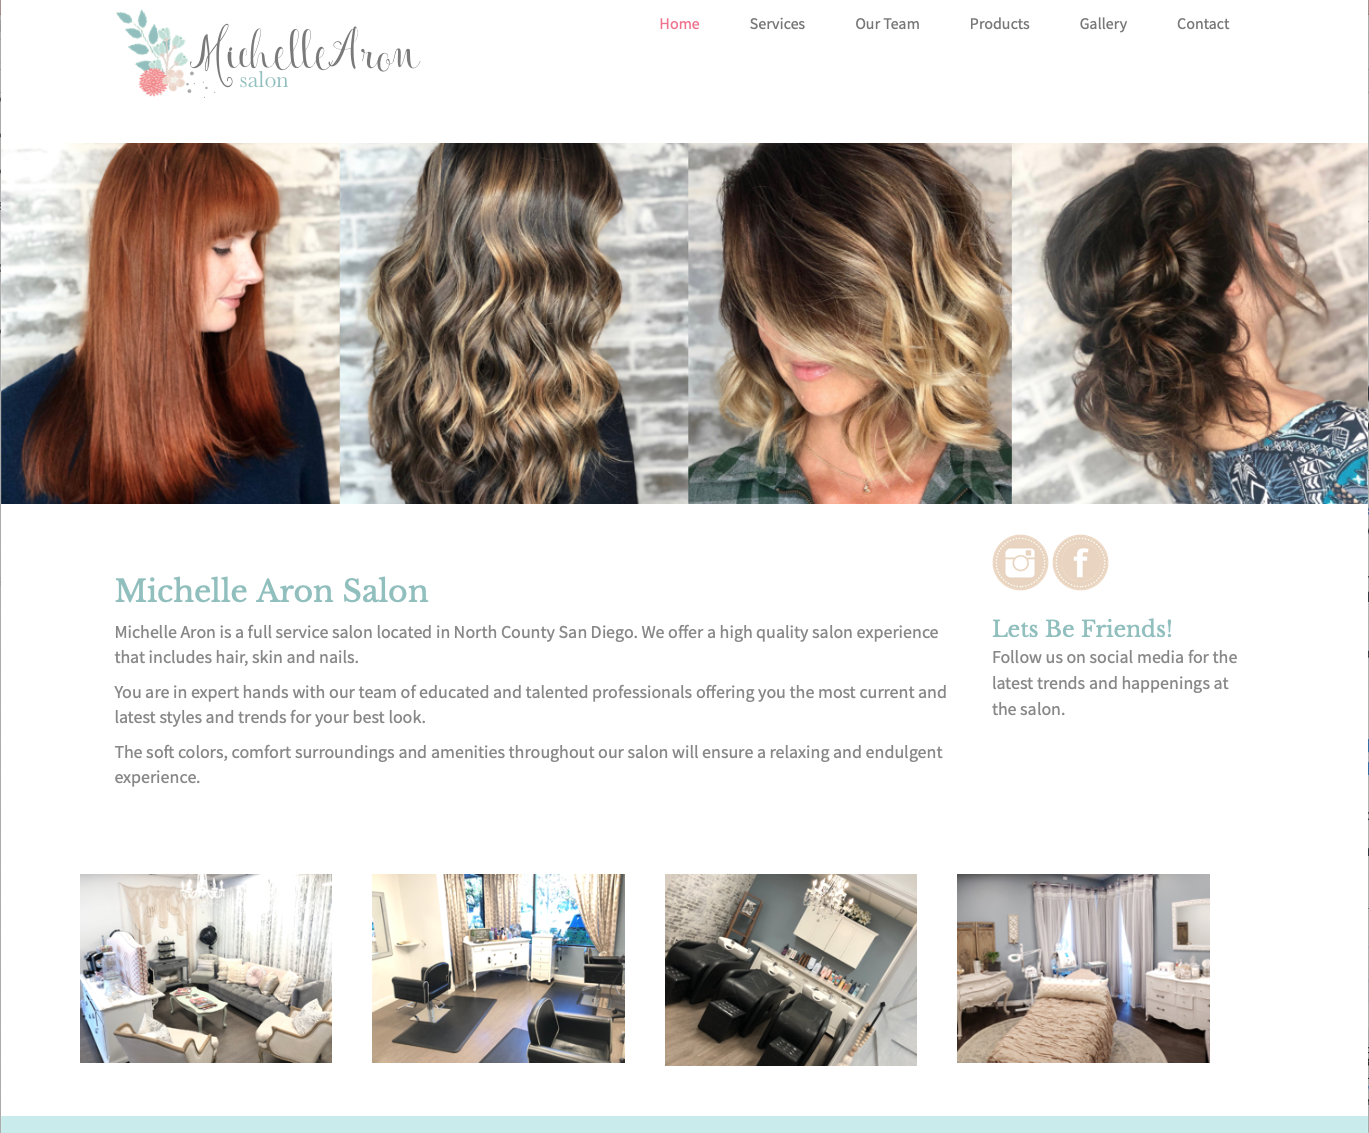 Michelle Aron Salon Website